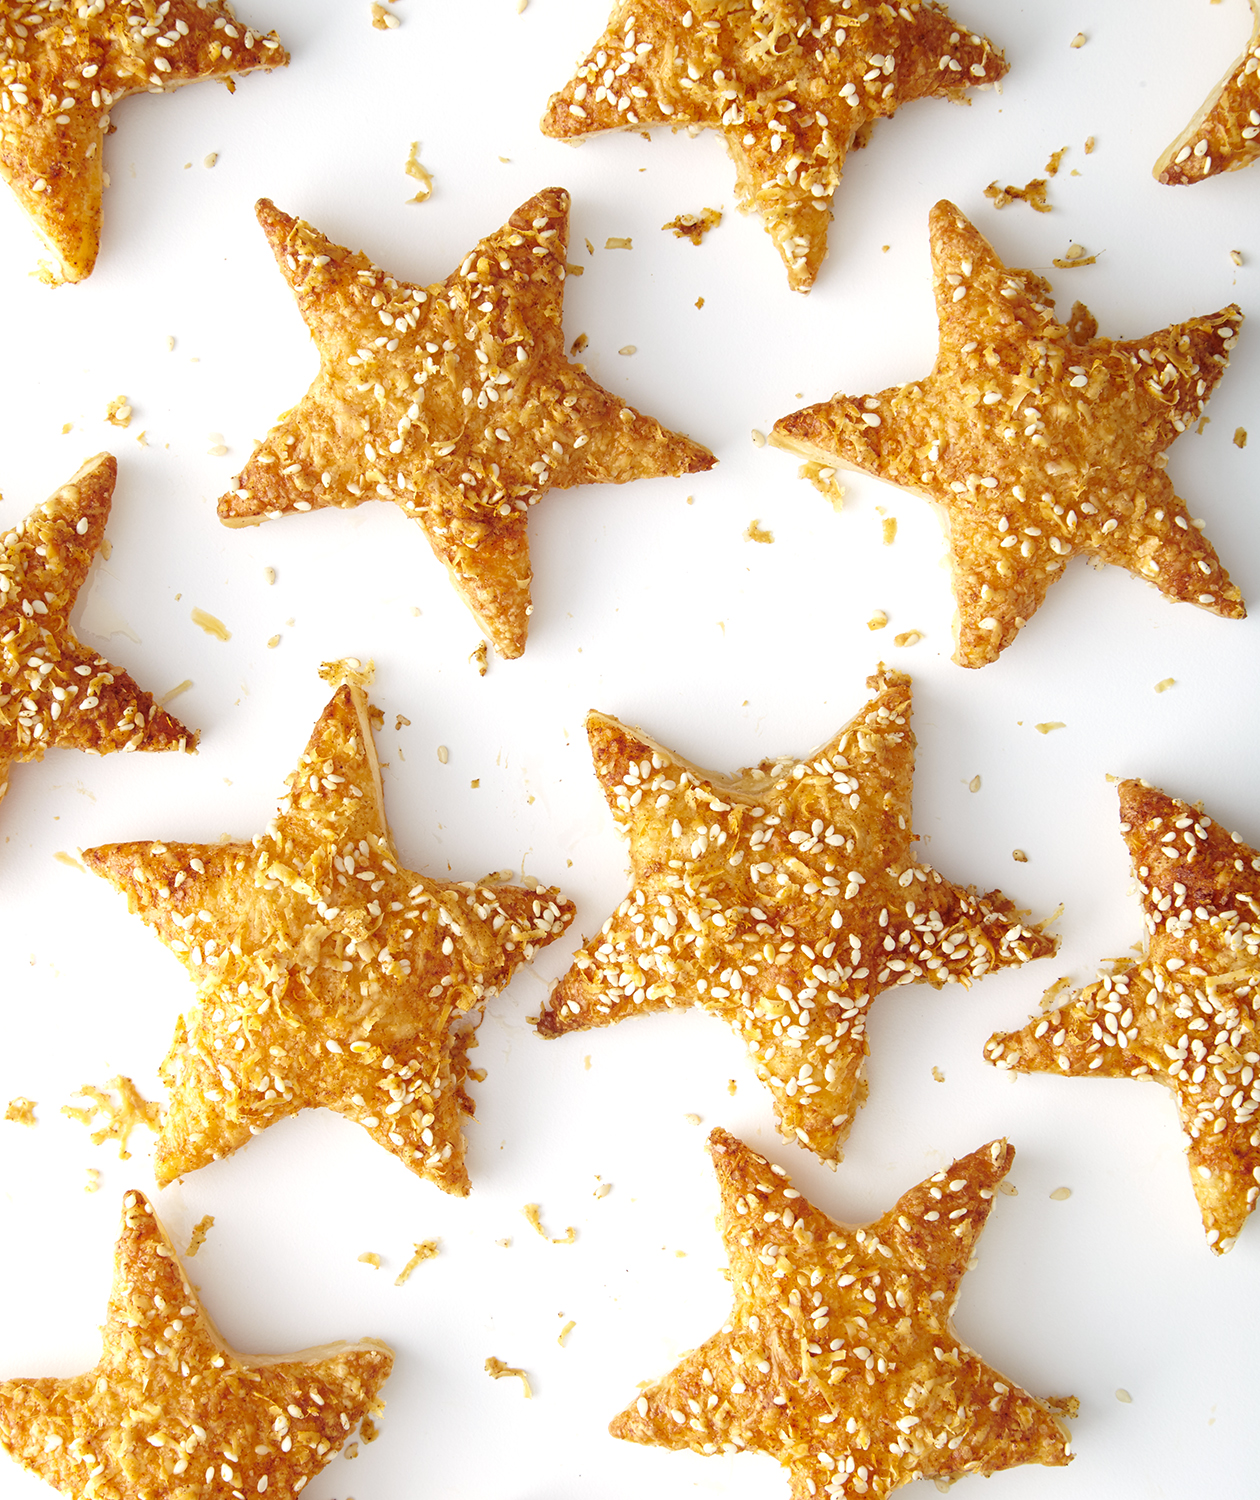 Starry Sesame Cheese Puffs